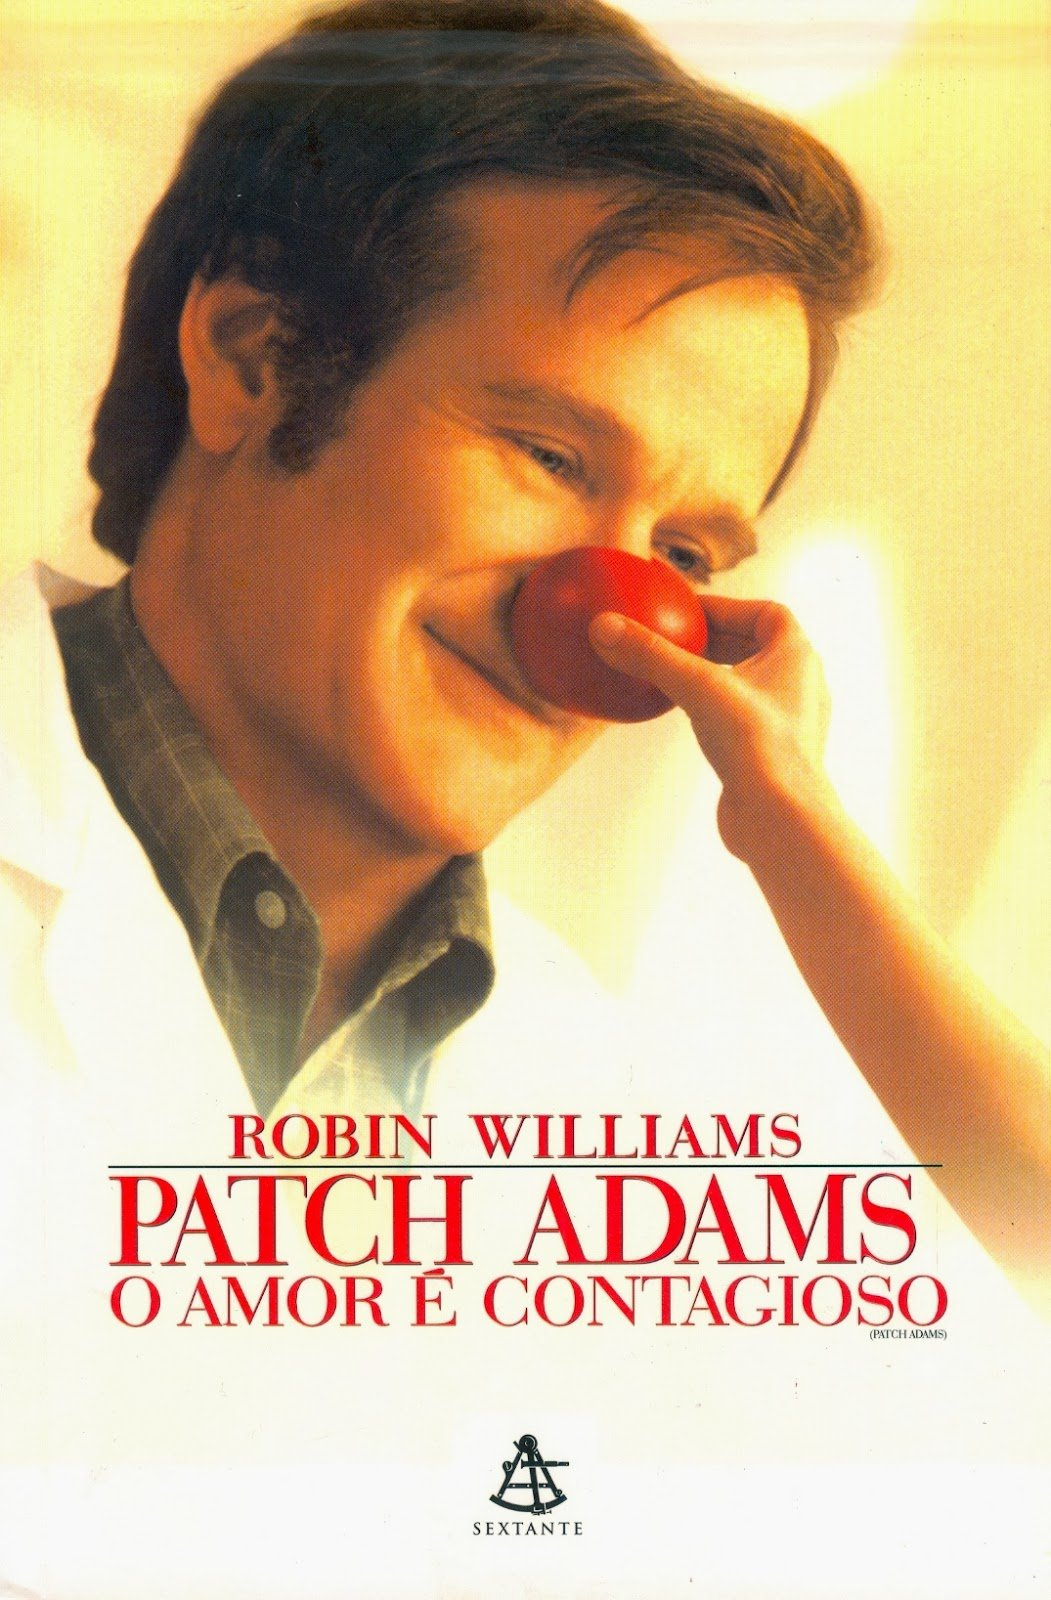 Patch Adams Quotes On Laughter. QuotesGram